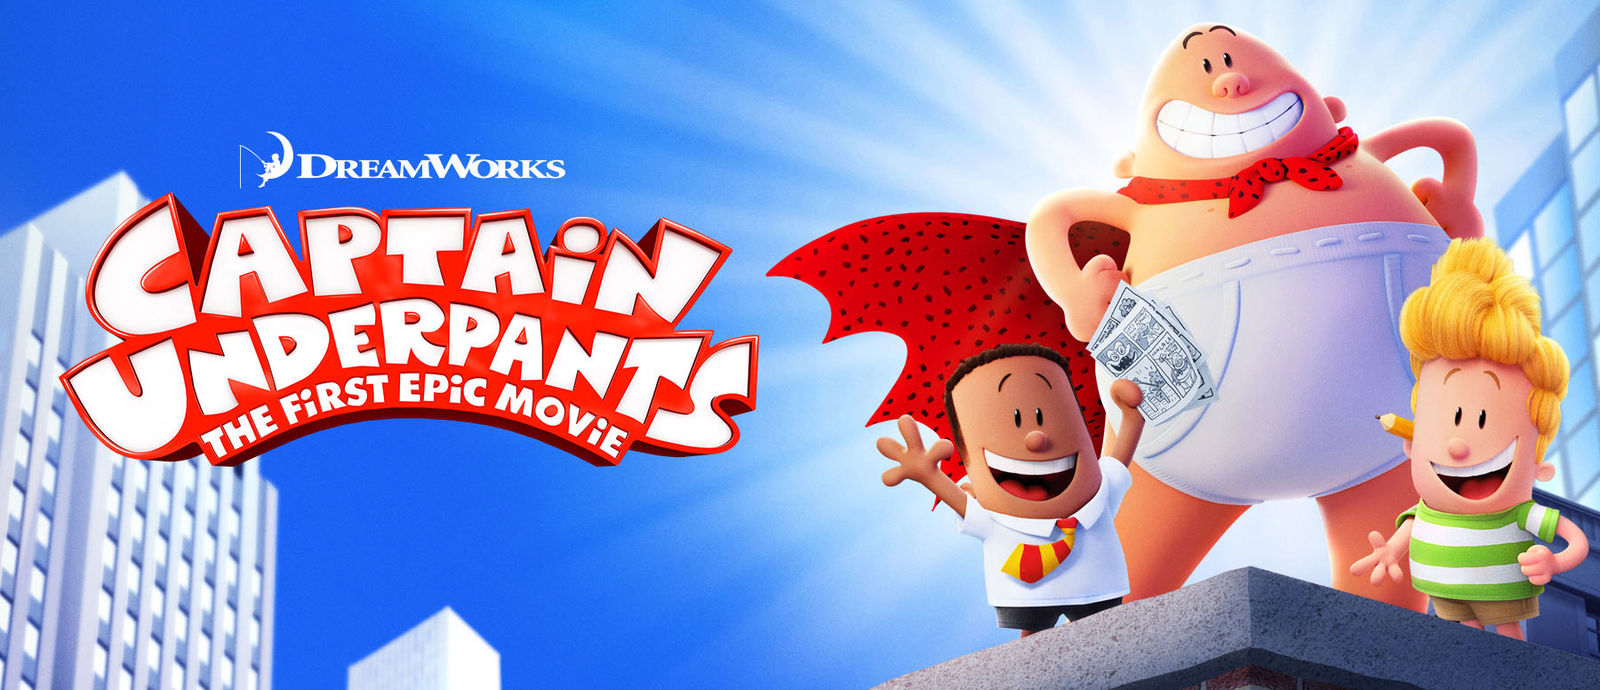 image captain underpants the first epic movie baner jpg